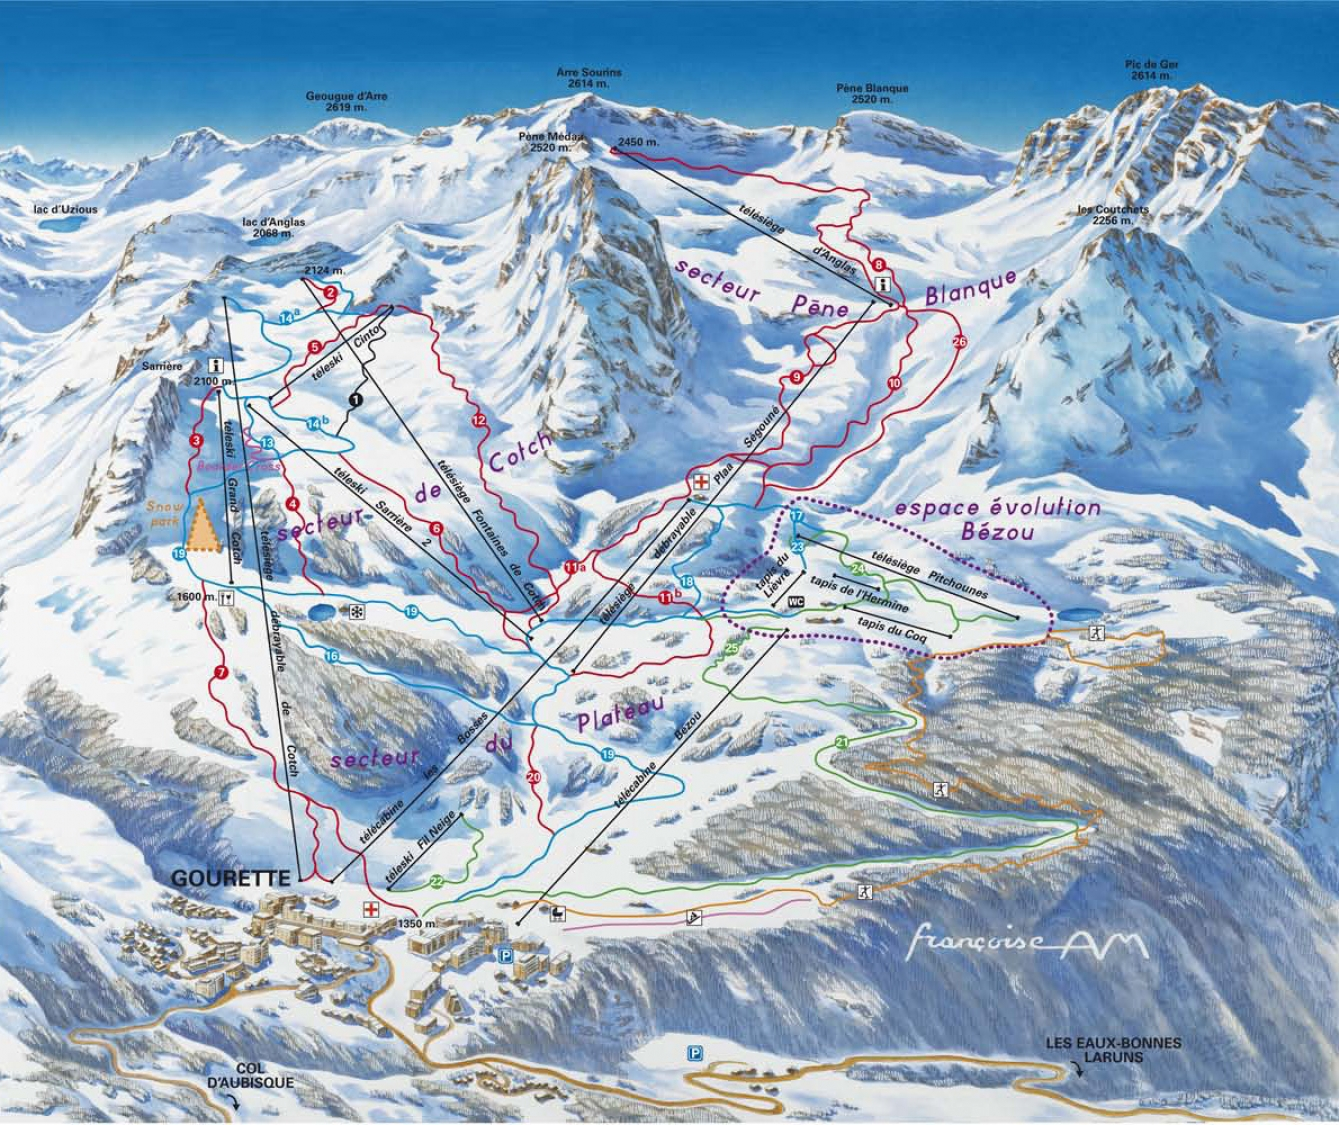 plan-pistes-136-full gourette